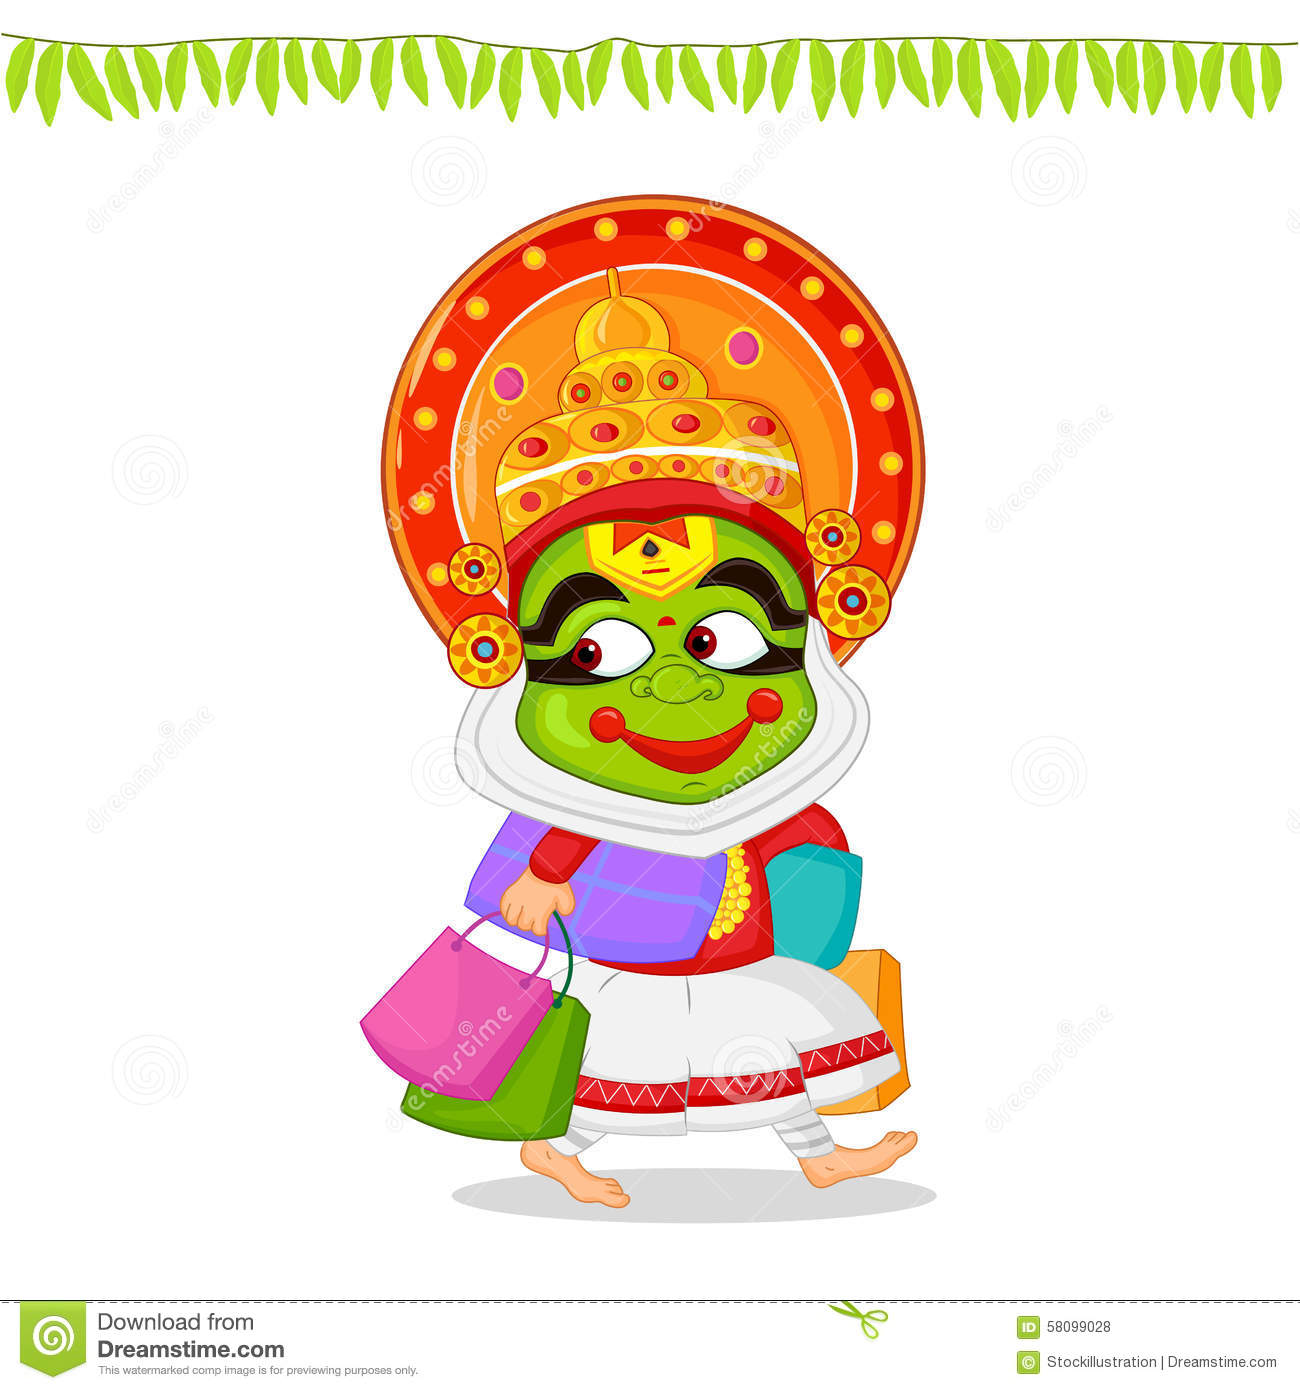 kathakali cartoons pictures illustrations - photo #16